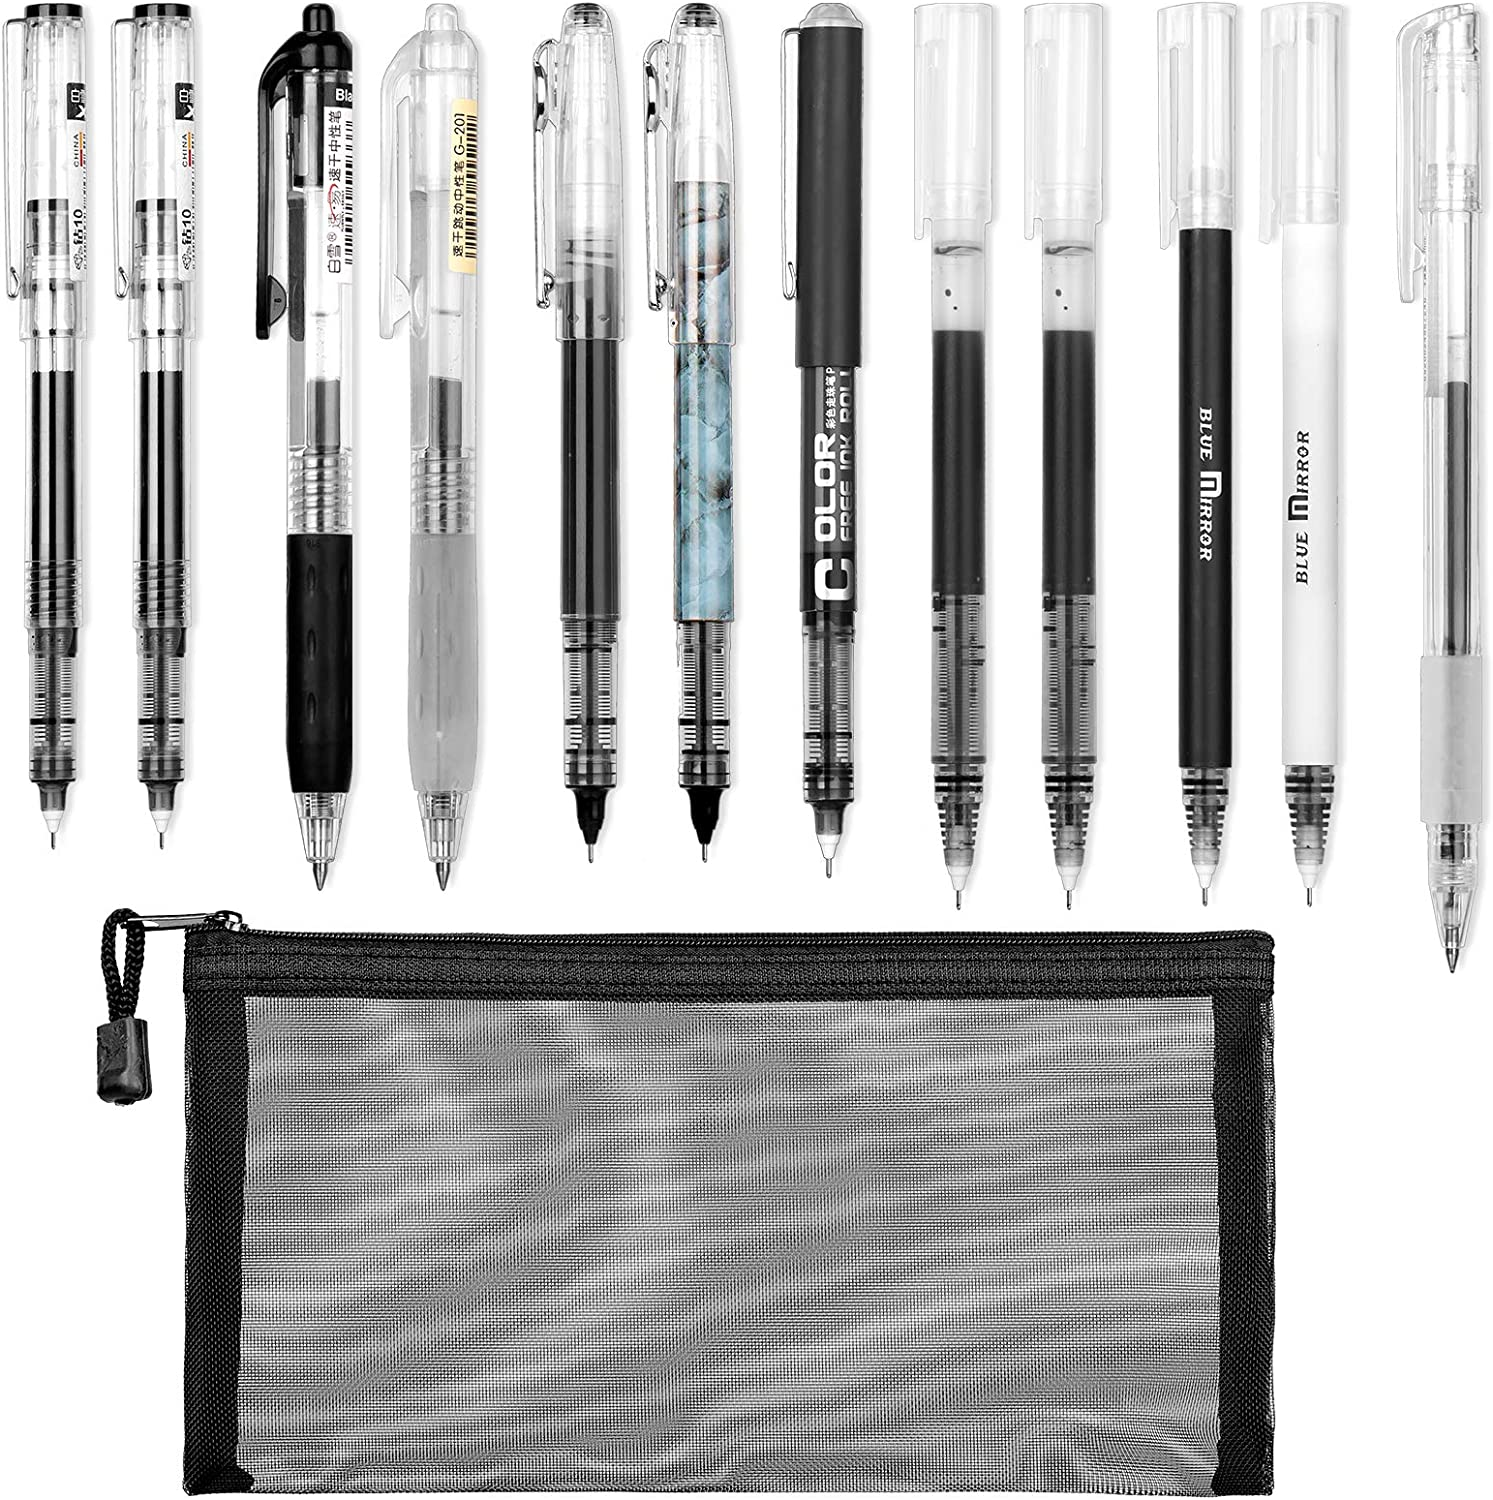 Whaline 13Pcs Gel Pen Set with 12Pcs Black Fine Point Pens Ballpoint Pen and 1 Pen Bag Gel Ink Pens for Student Back to School Supplies Office Business Administration Writer